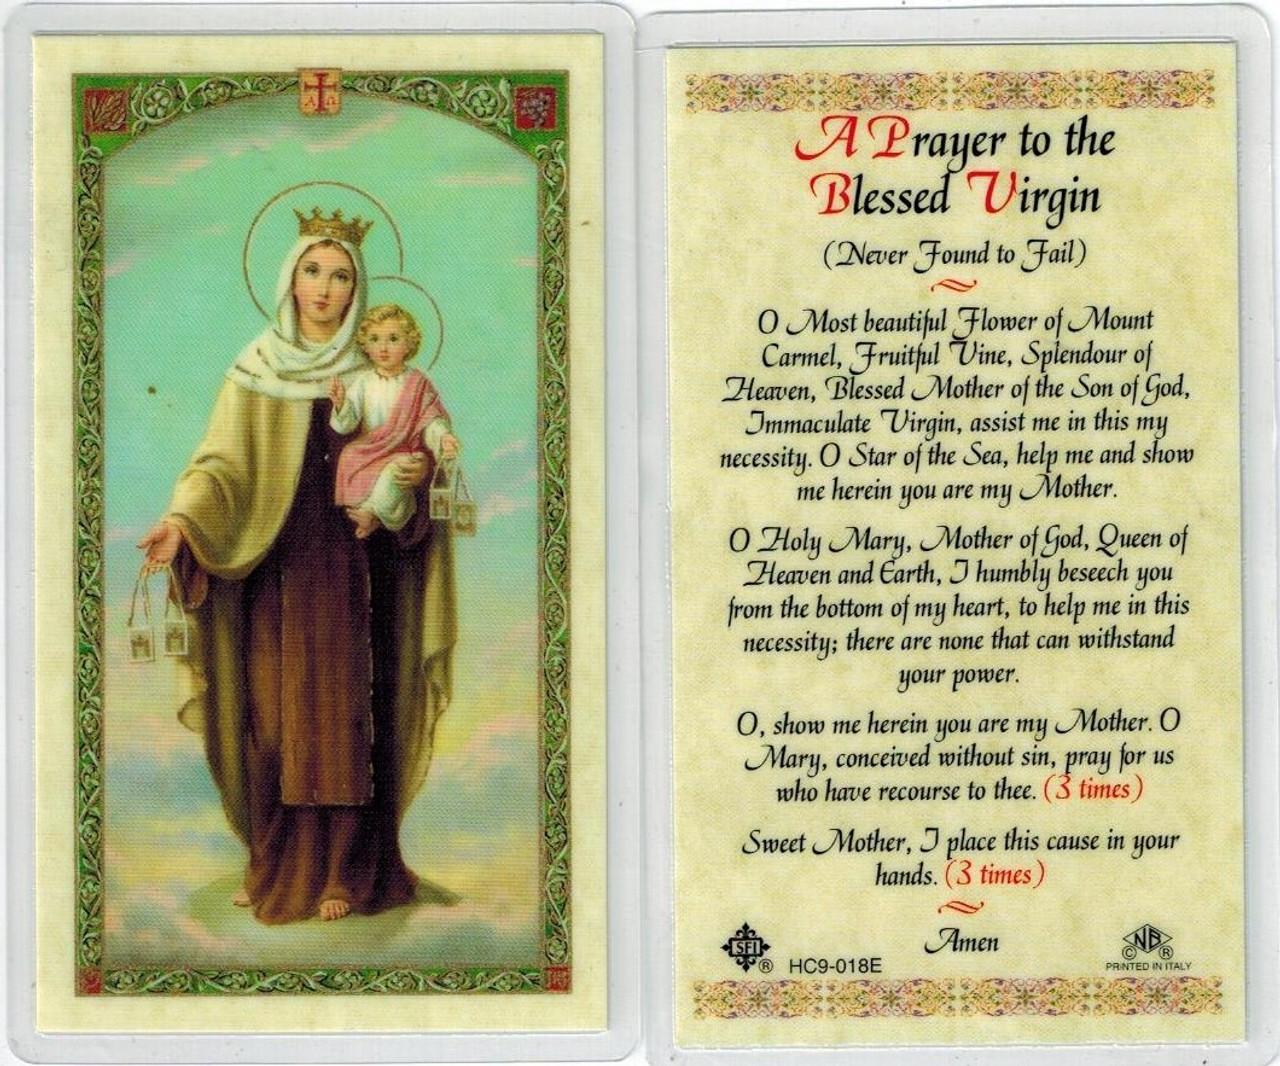 A prayer to the Blessed Virgin, laminated prayer card